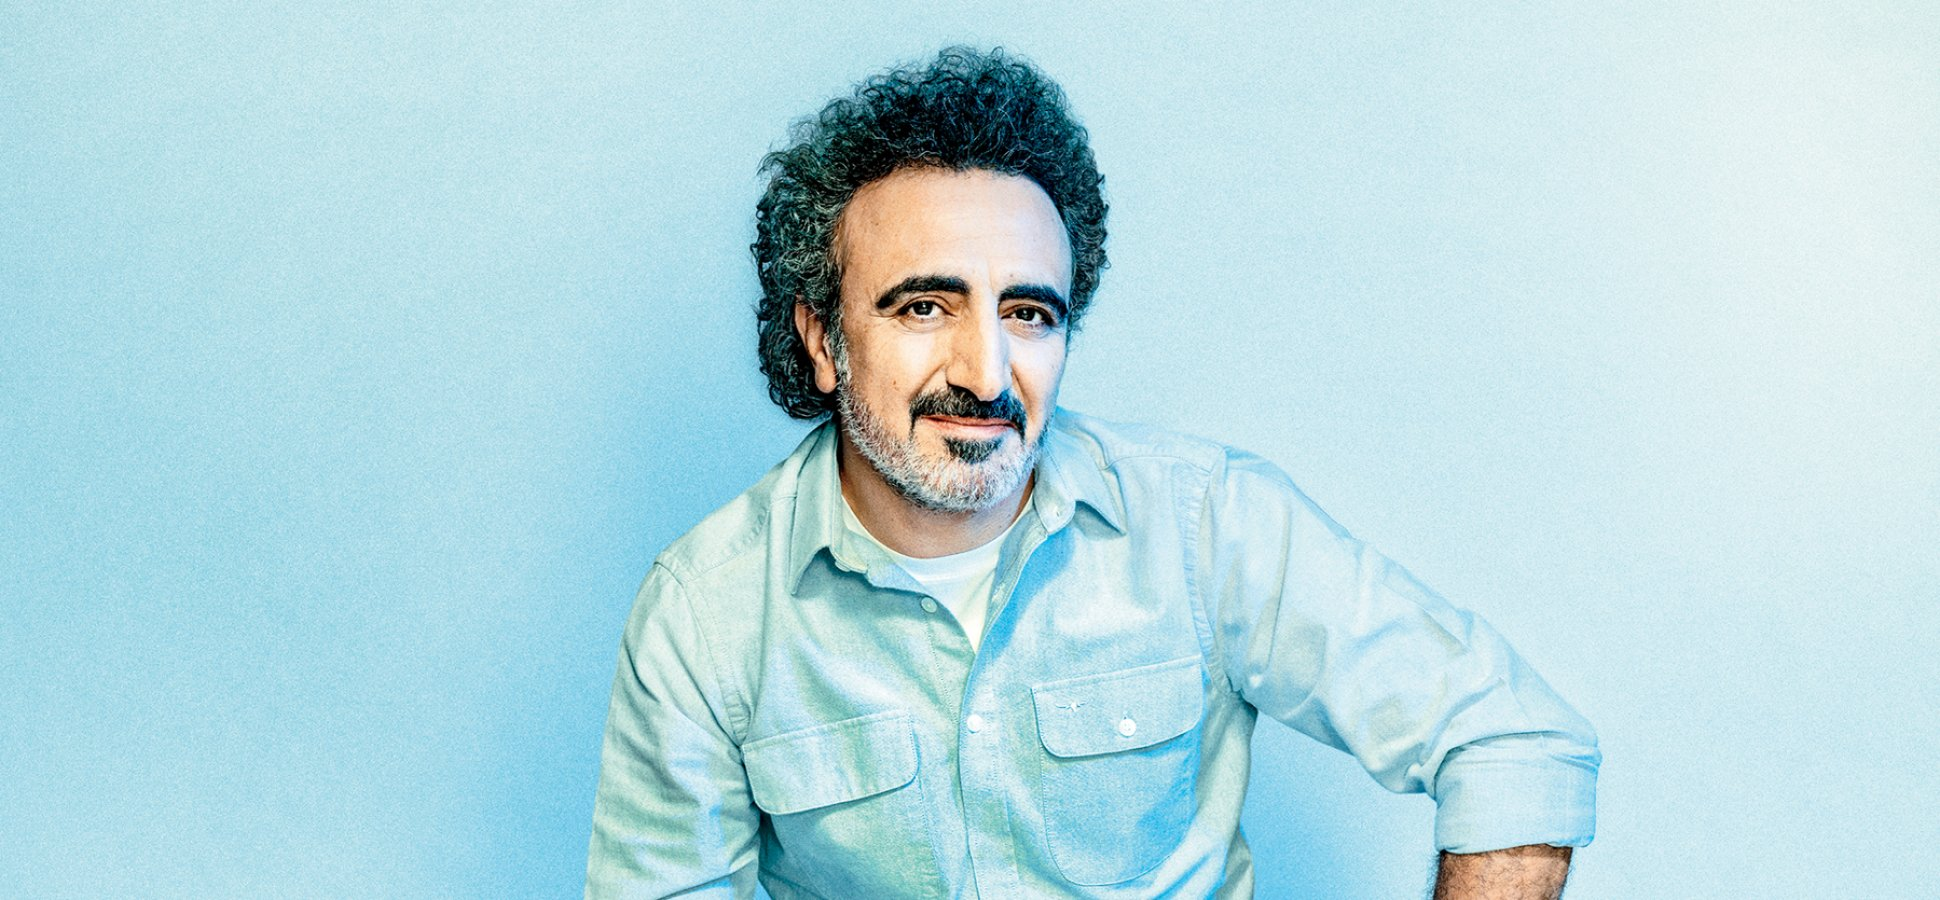 Chobani Founder Hamdi Ulukaya Says Hiring Refugees Isn't a Political